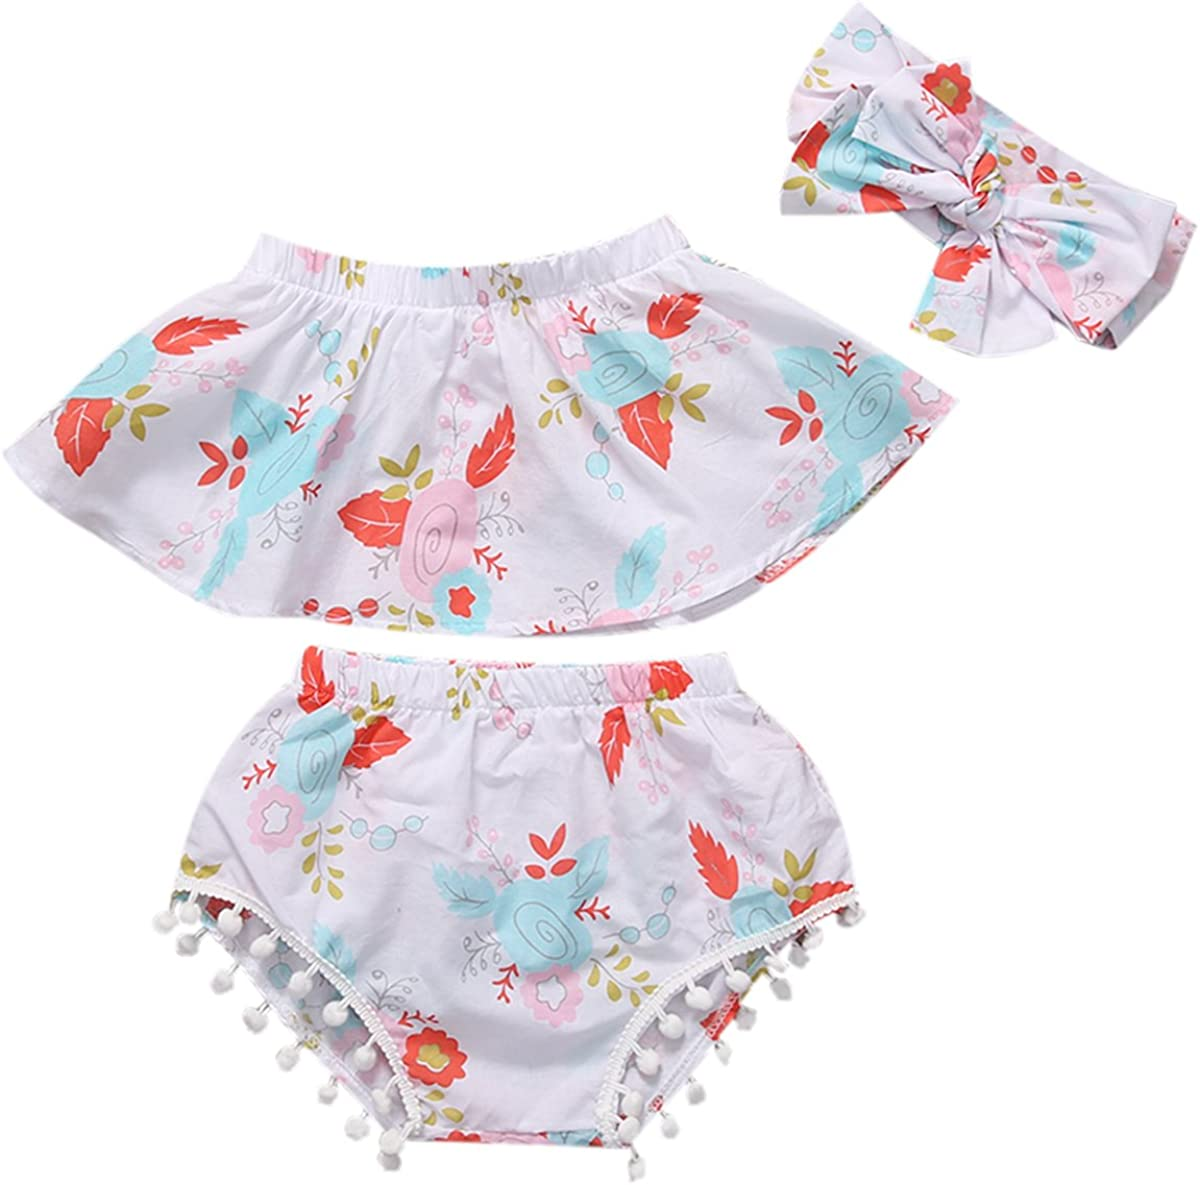 Infant Baby Girl Off Shoulder Tops Tassel Shorts Outfit with Cute Headband